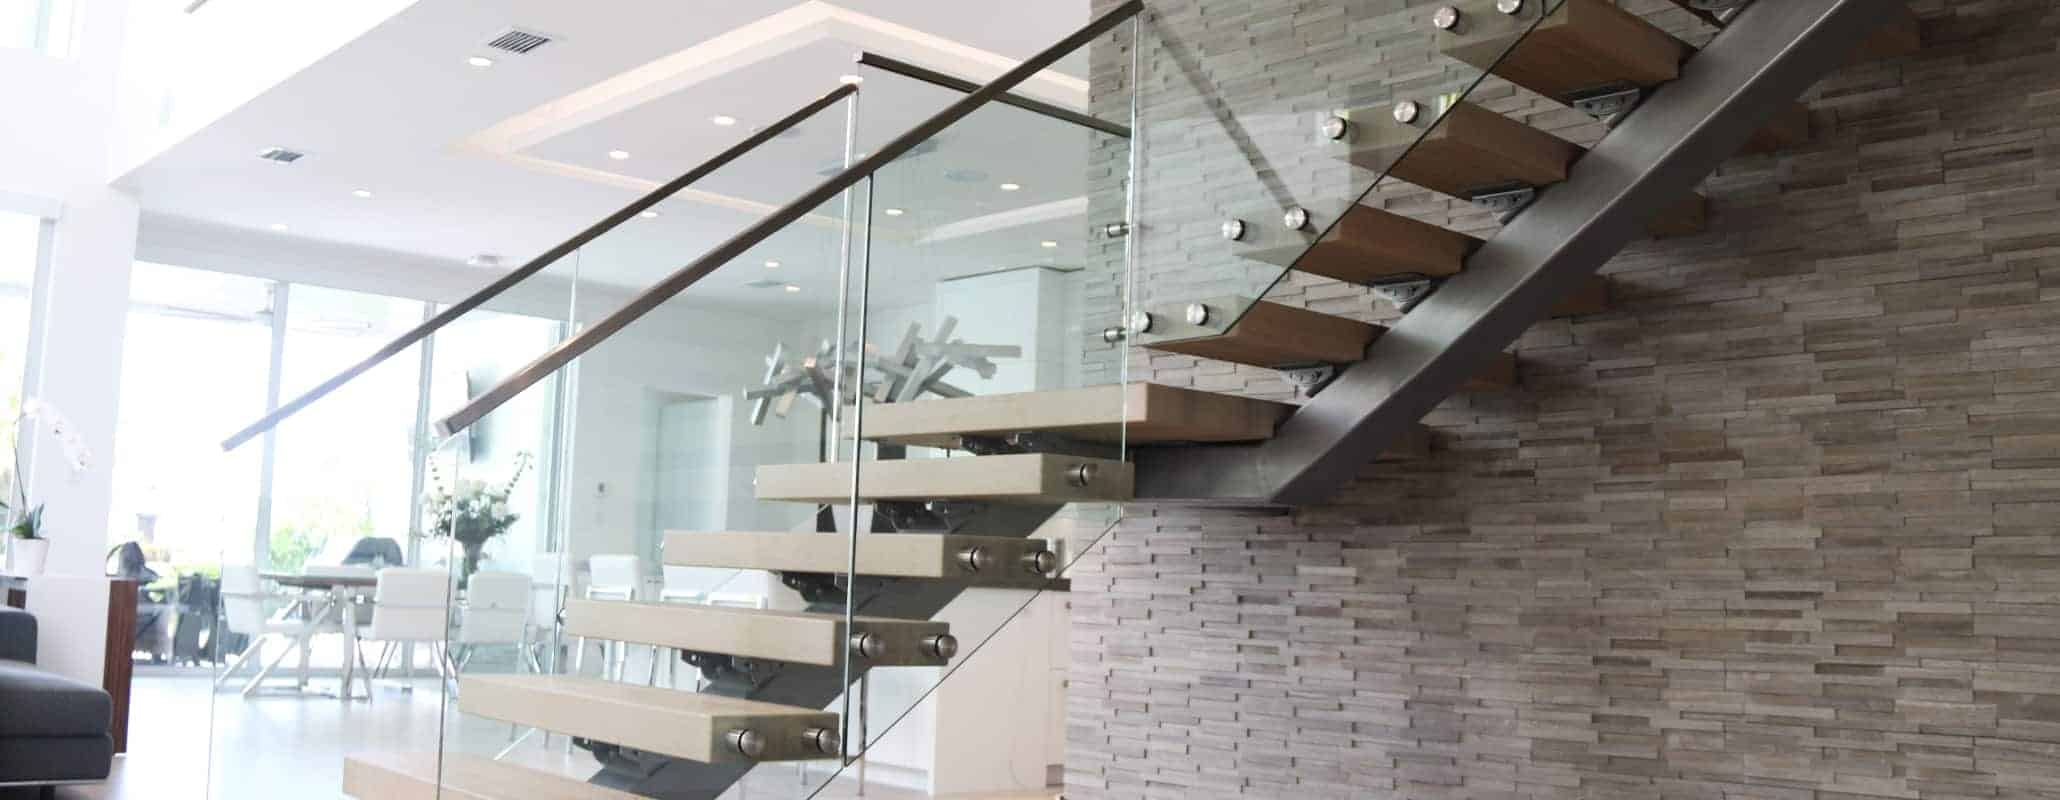 Glass Railings For Interior And Exterior Use By Aldora | Tempered Glass Panels For Stairs | Metal | Glass Balustrade | Newel Post | Acrylic | Bannister